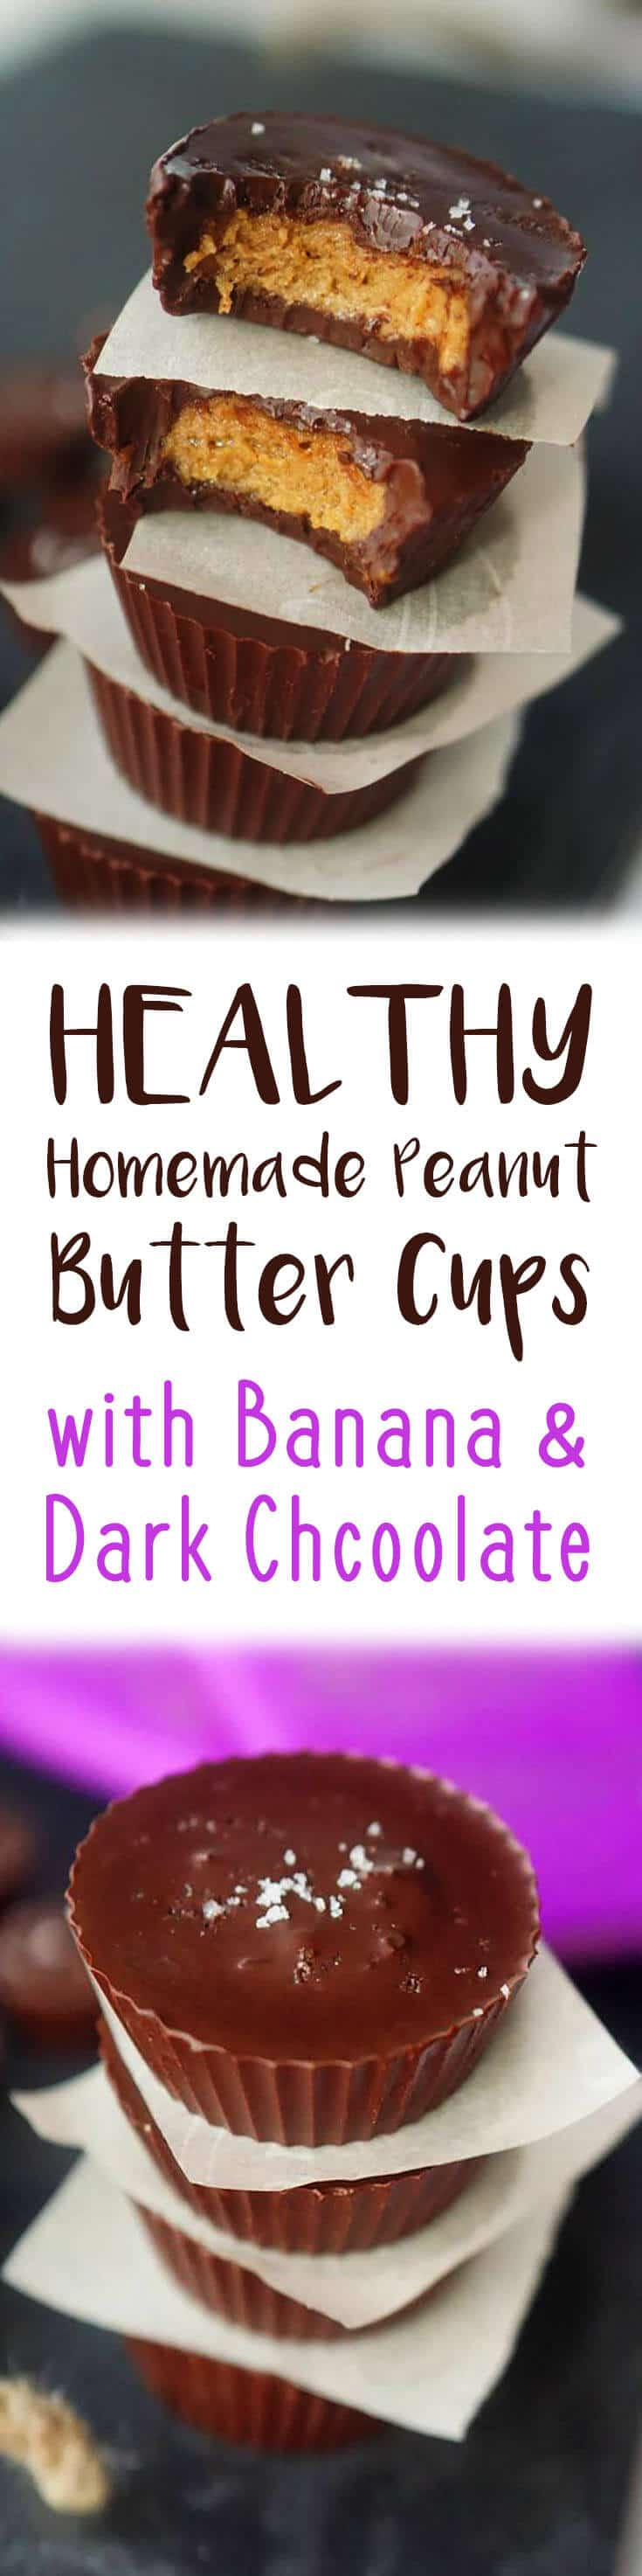 These Healthy Homemade Peanut Butter Cups are one of my favourite desserts of all time. #darkchocolate #peanutbutter #chocolatecups #healthydessert #homemade #healthyrecipe